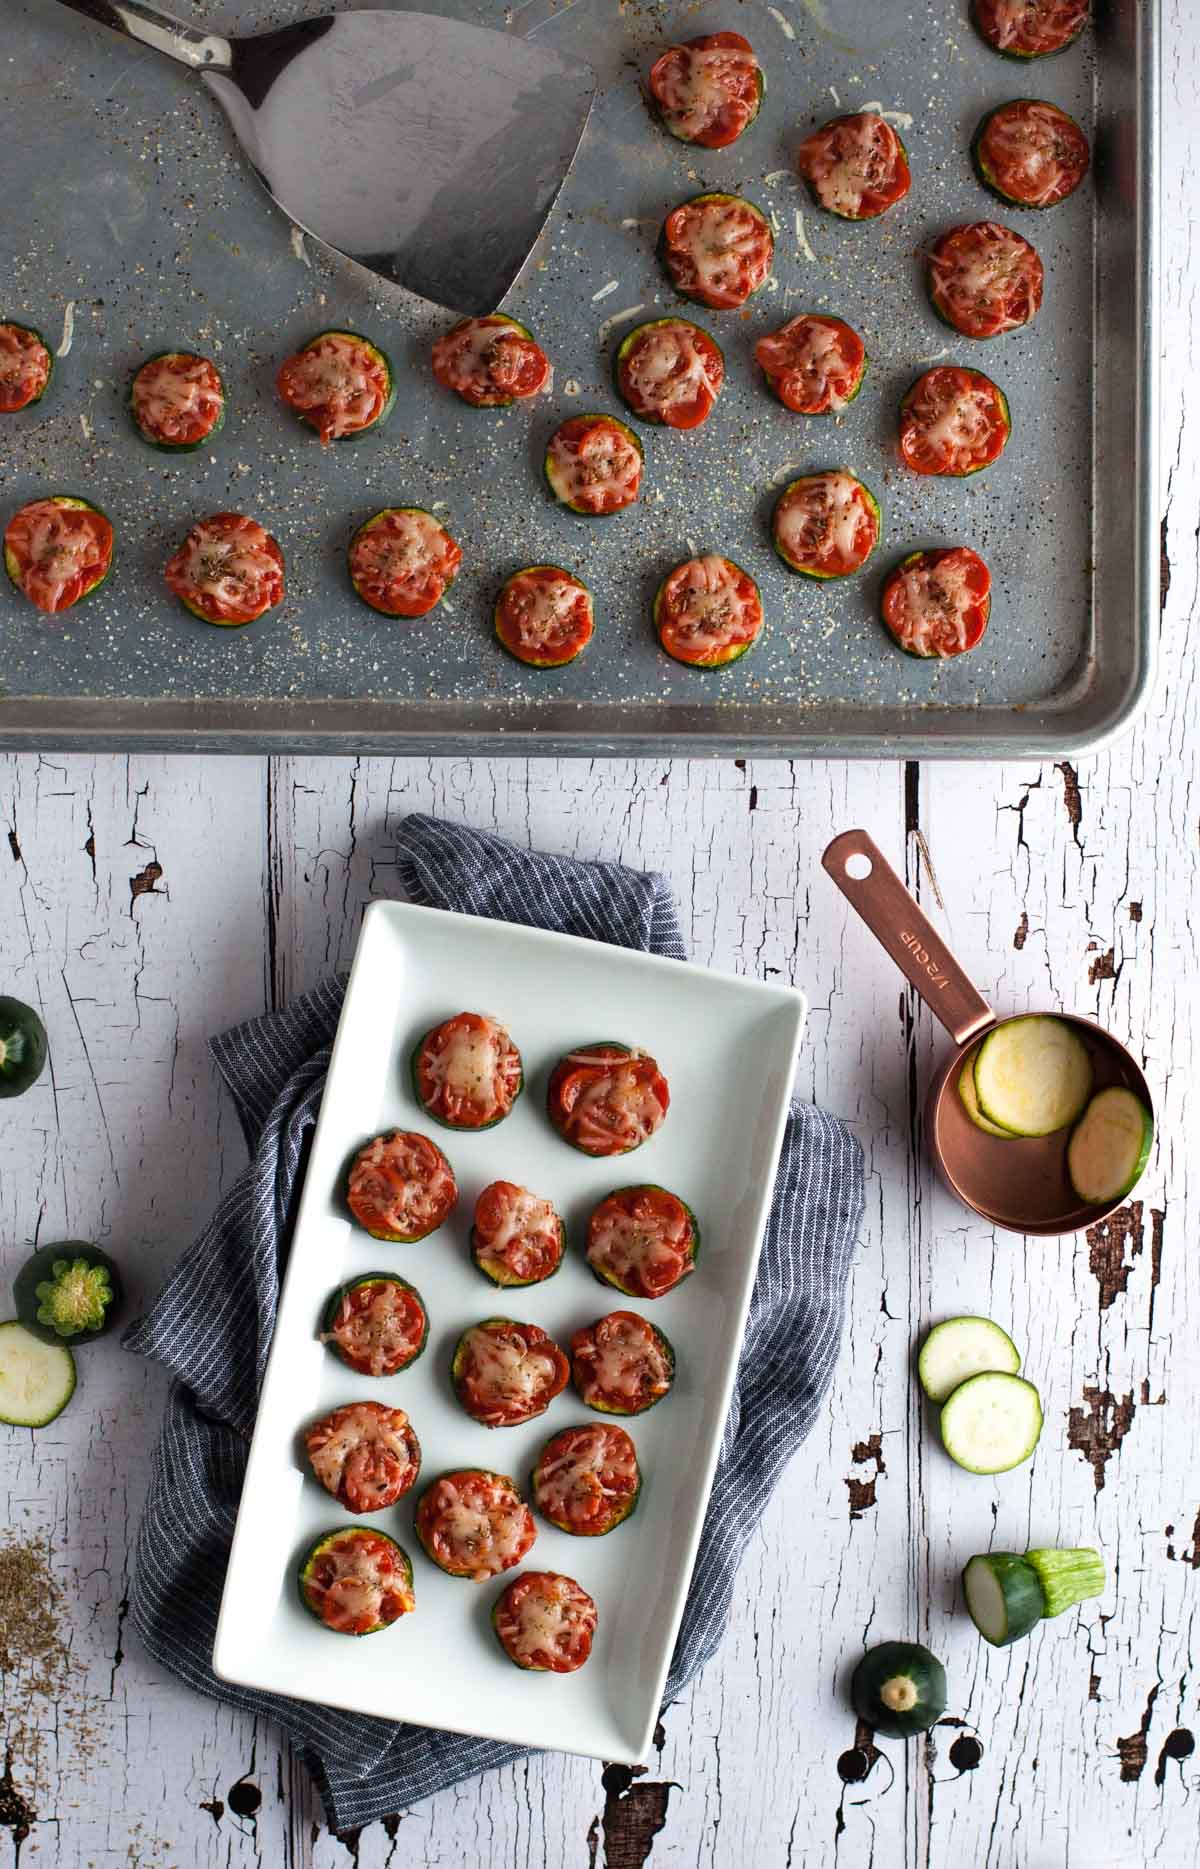 Zucchini pizza bites are the perfect snack for game day or any other time you need a healthy appetizer that is simple and easy to make, but full of flavor.